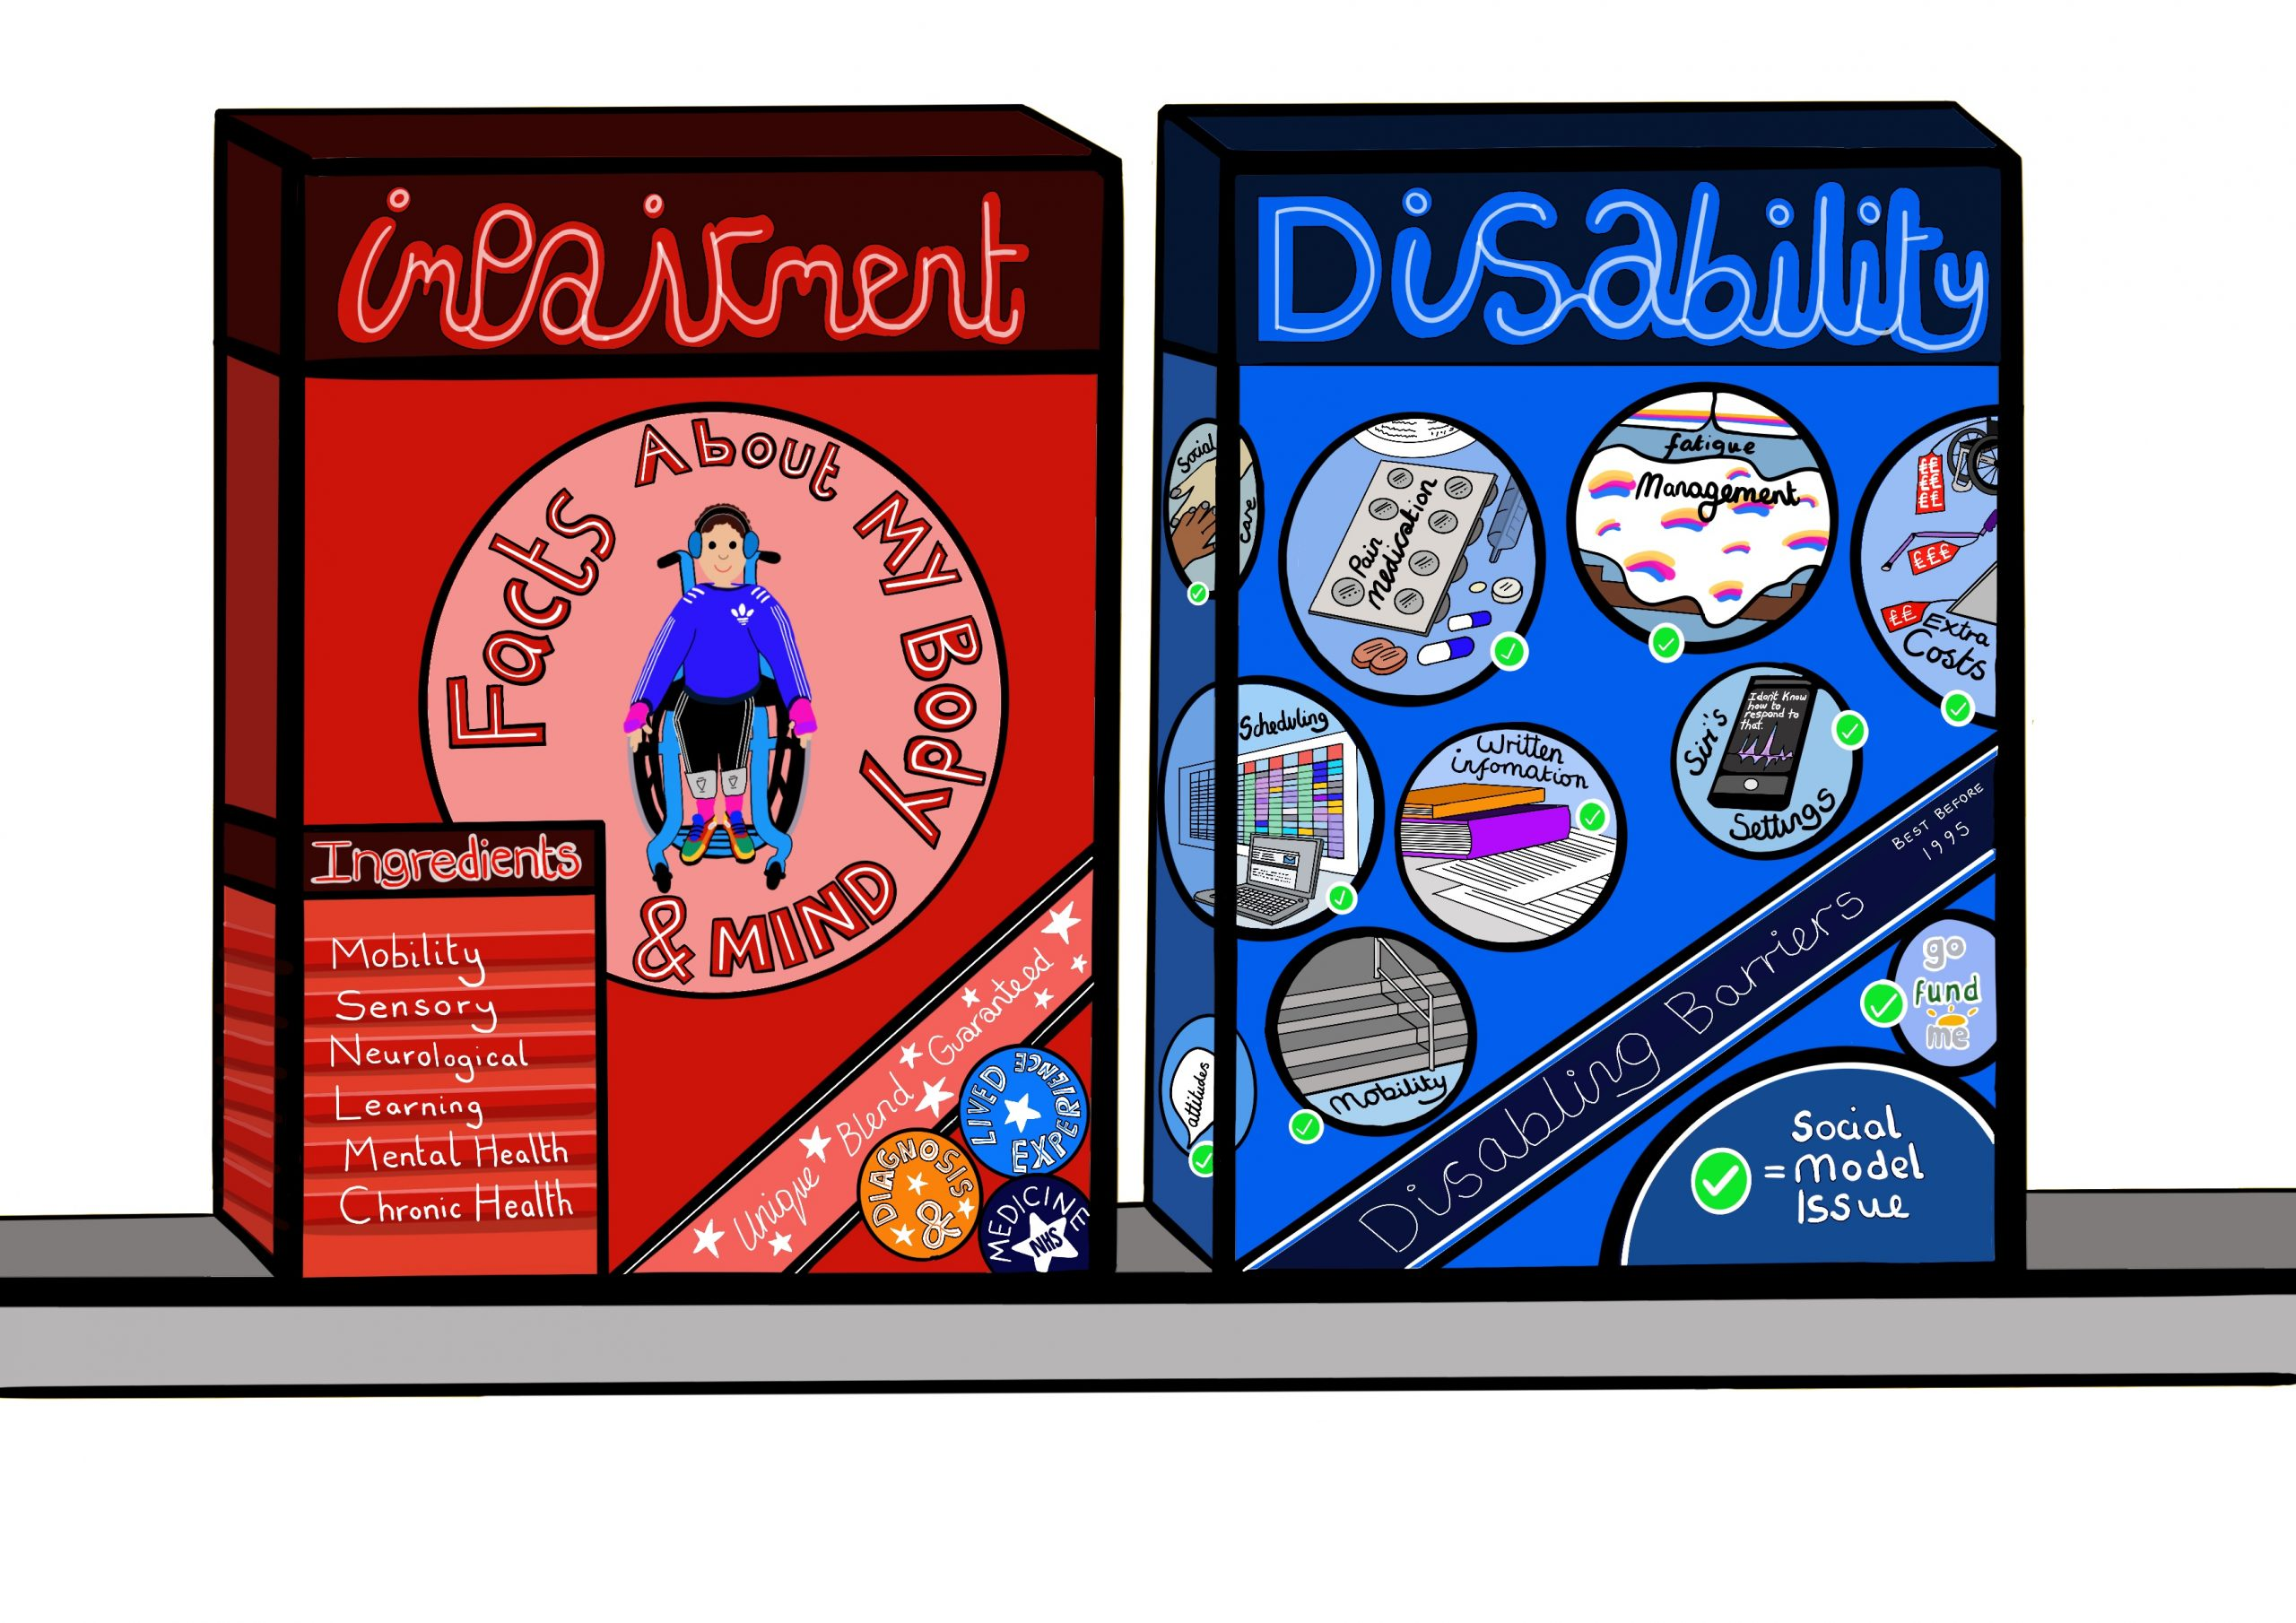 A hand drawn digital image of two imaginary cereal packets, the one on the left is red and titled Impairment. On the right is a blue one titled Disability. The Impairment box has an image of Touretteshero in her wheelchair and says facts about my body. The one on the right has nine small images in circles and says 'disabling barriers'. The images of barriers include a bed titled 'fatigue management' and a phone titled 'siri's settings' all of the nine small drawings show a different barrier from steps to scheduling and extra costs to pain medication. The semi circle at the bottom with a green tick shows these are all social model issues.